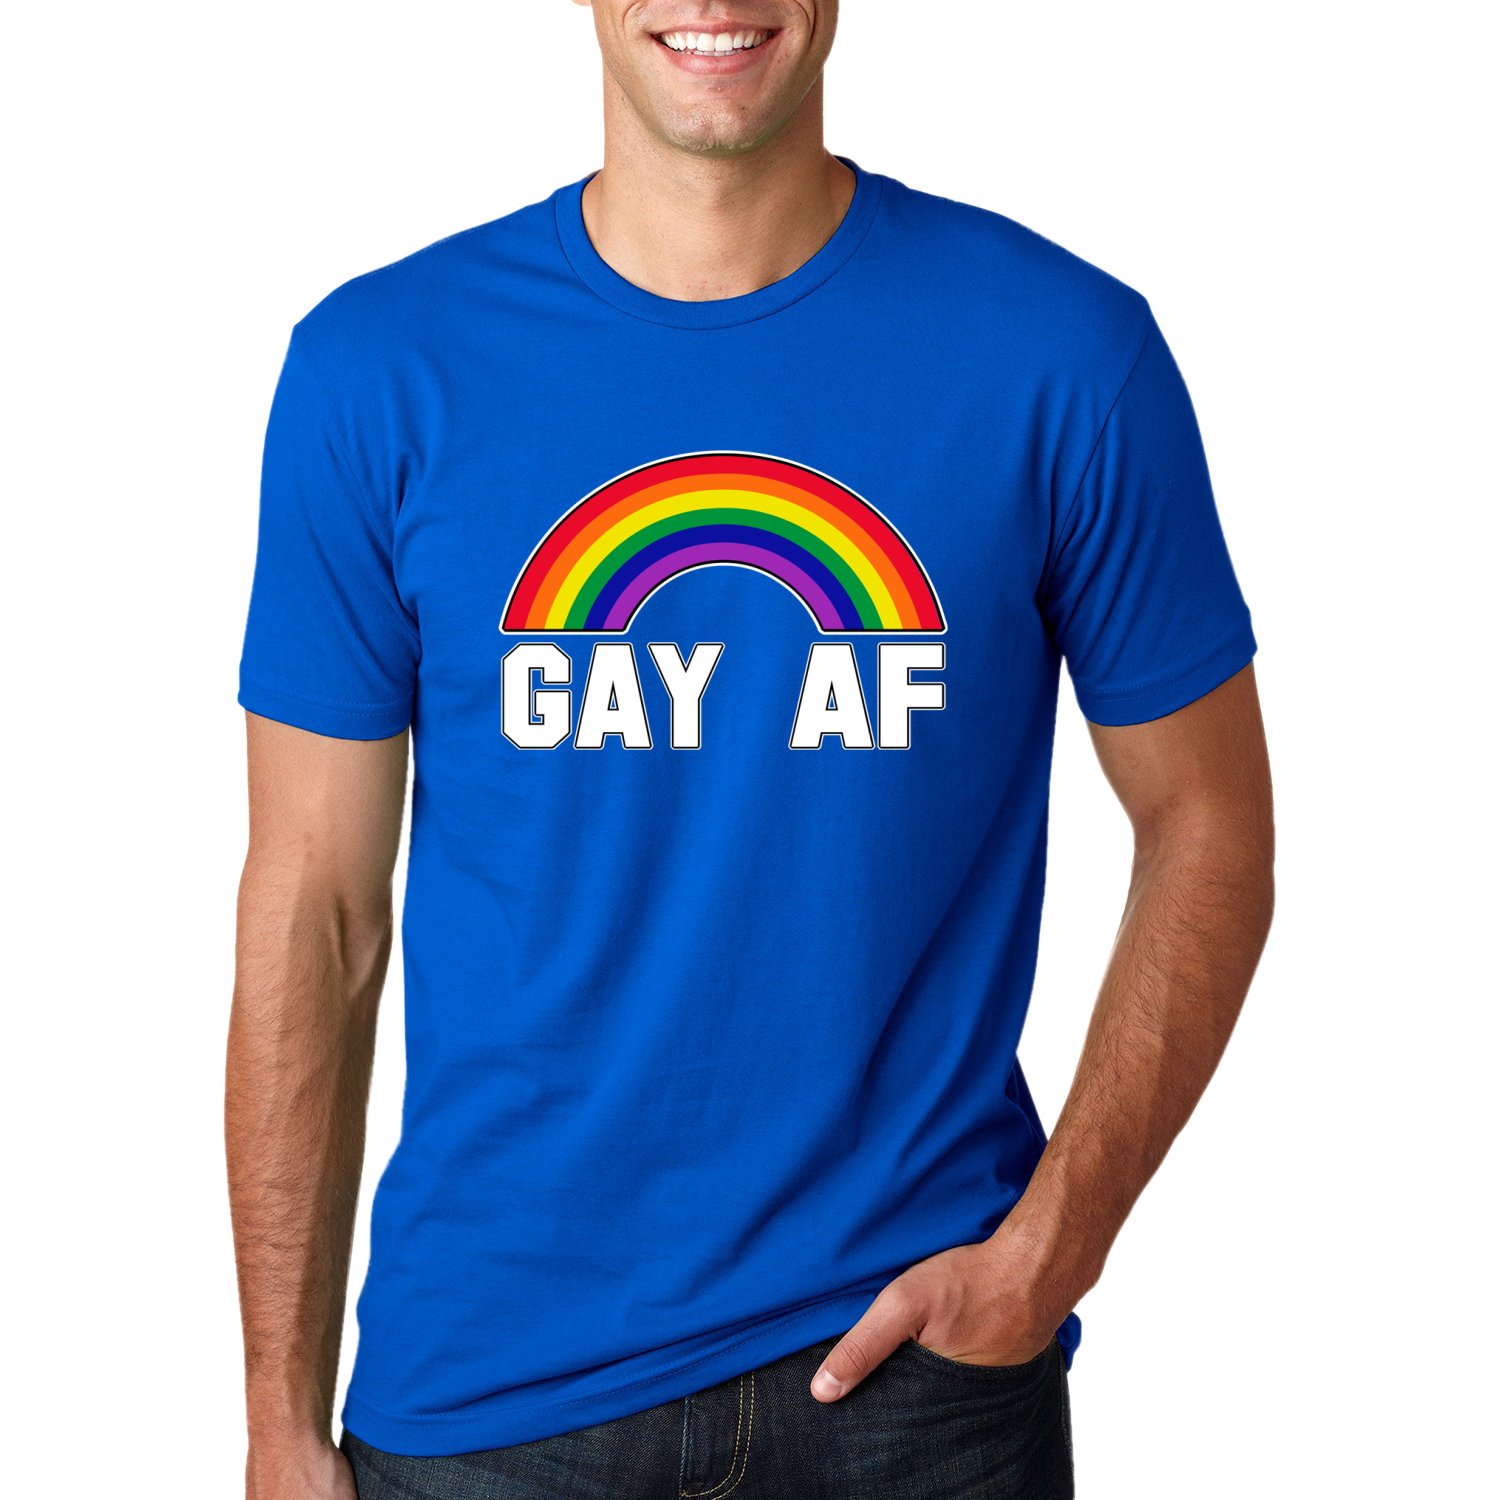 Air force is gay